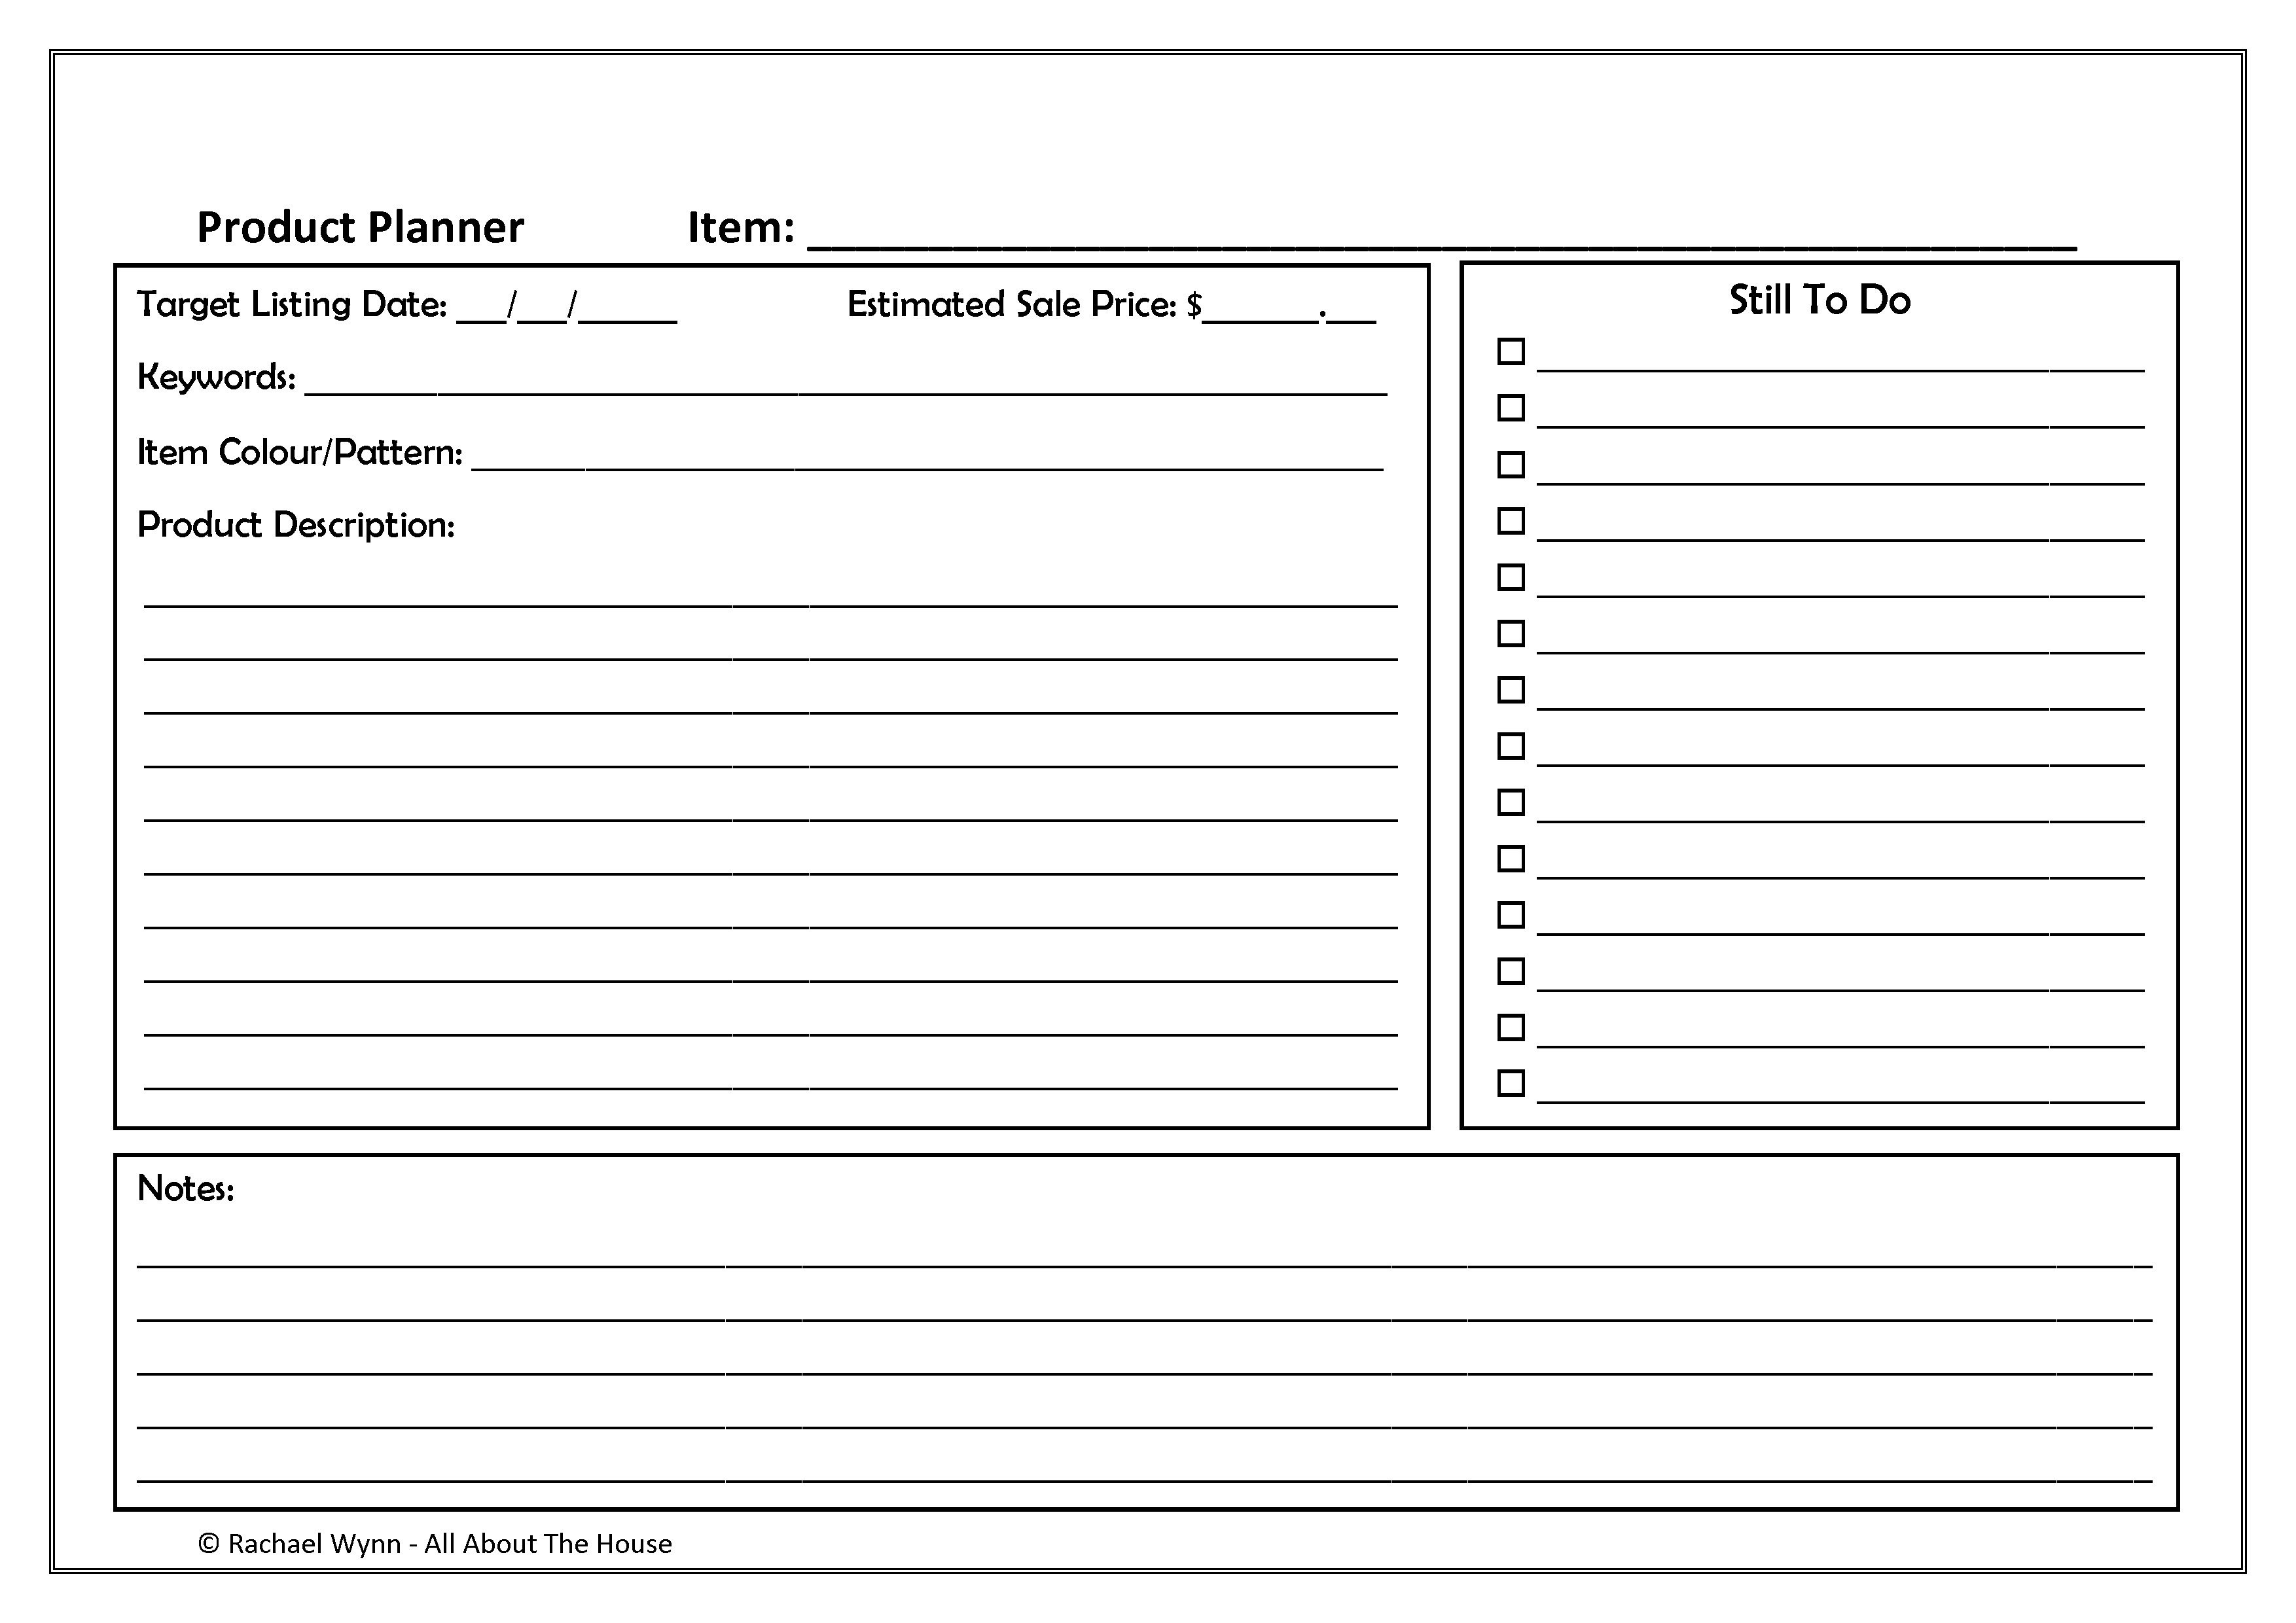 194. Product Planner p.2